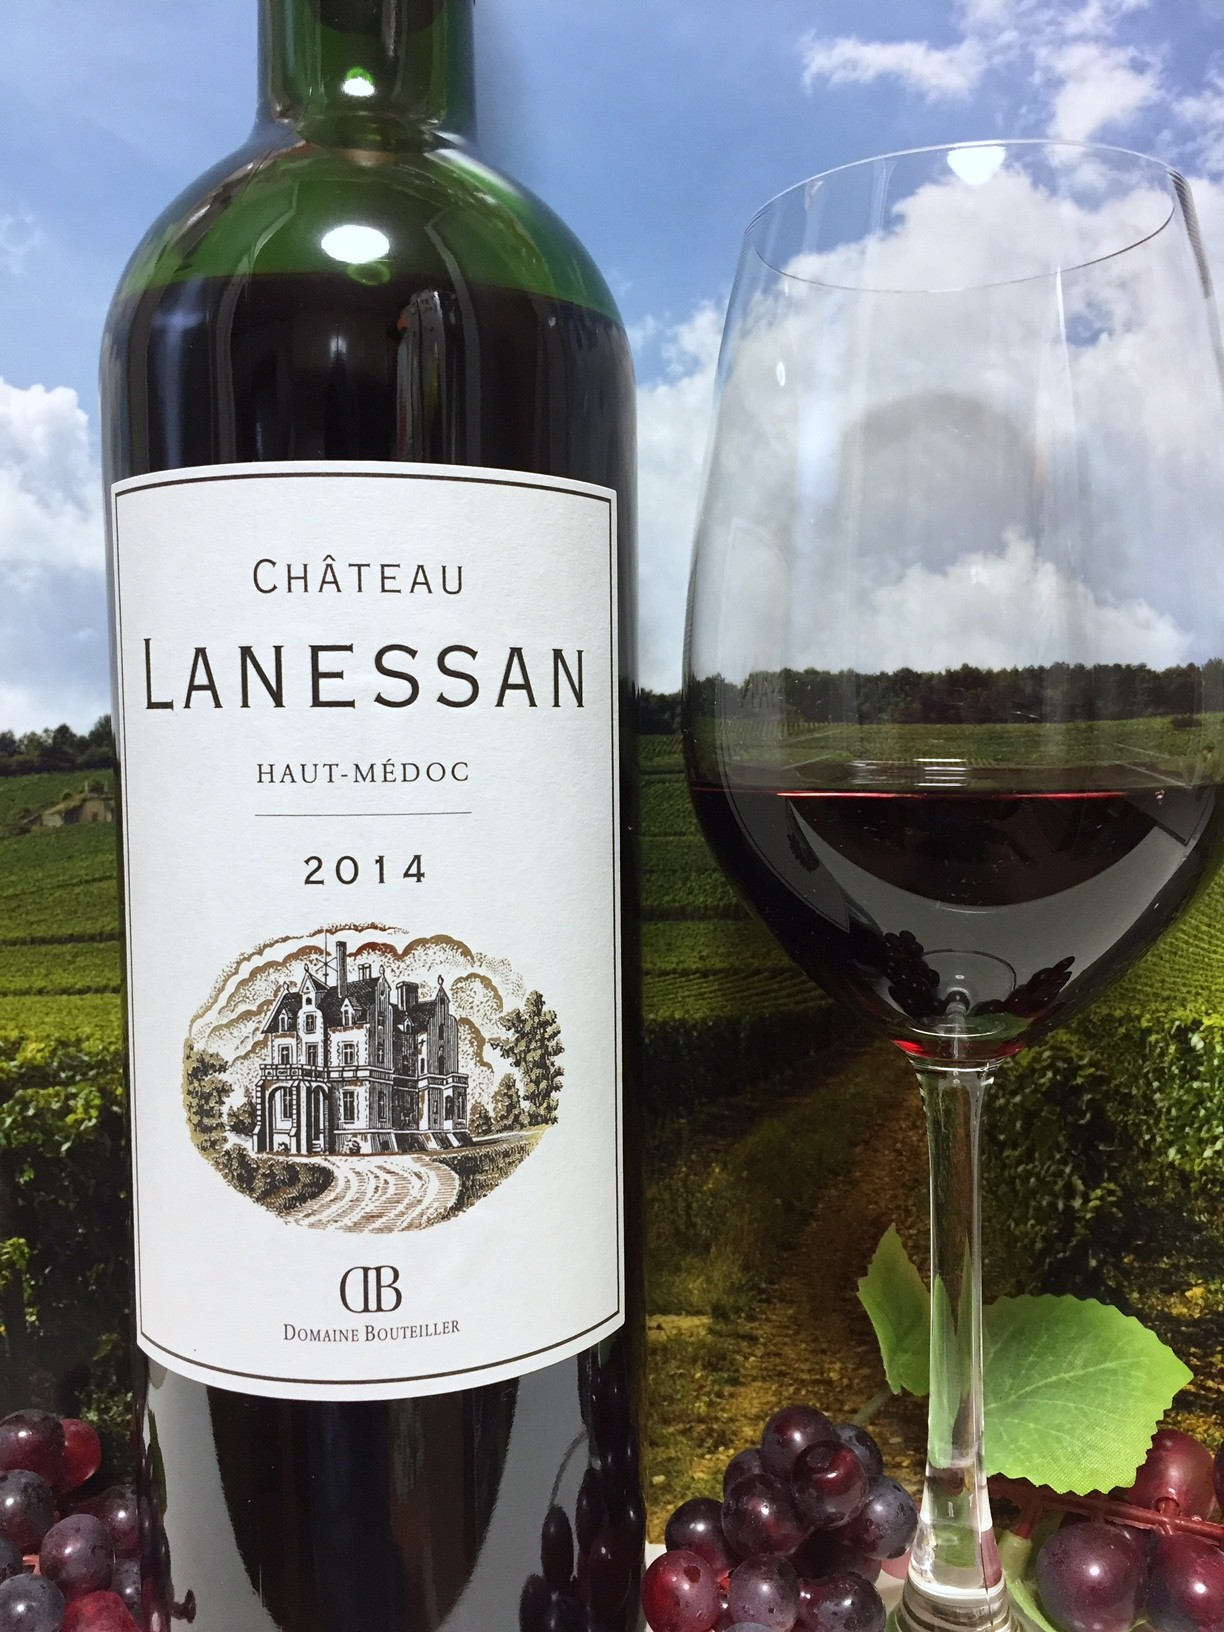 Ch teau lanessan 2014 red red wine for Chateau lanessan